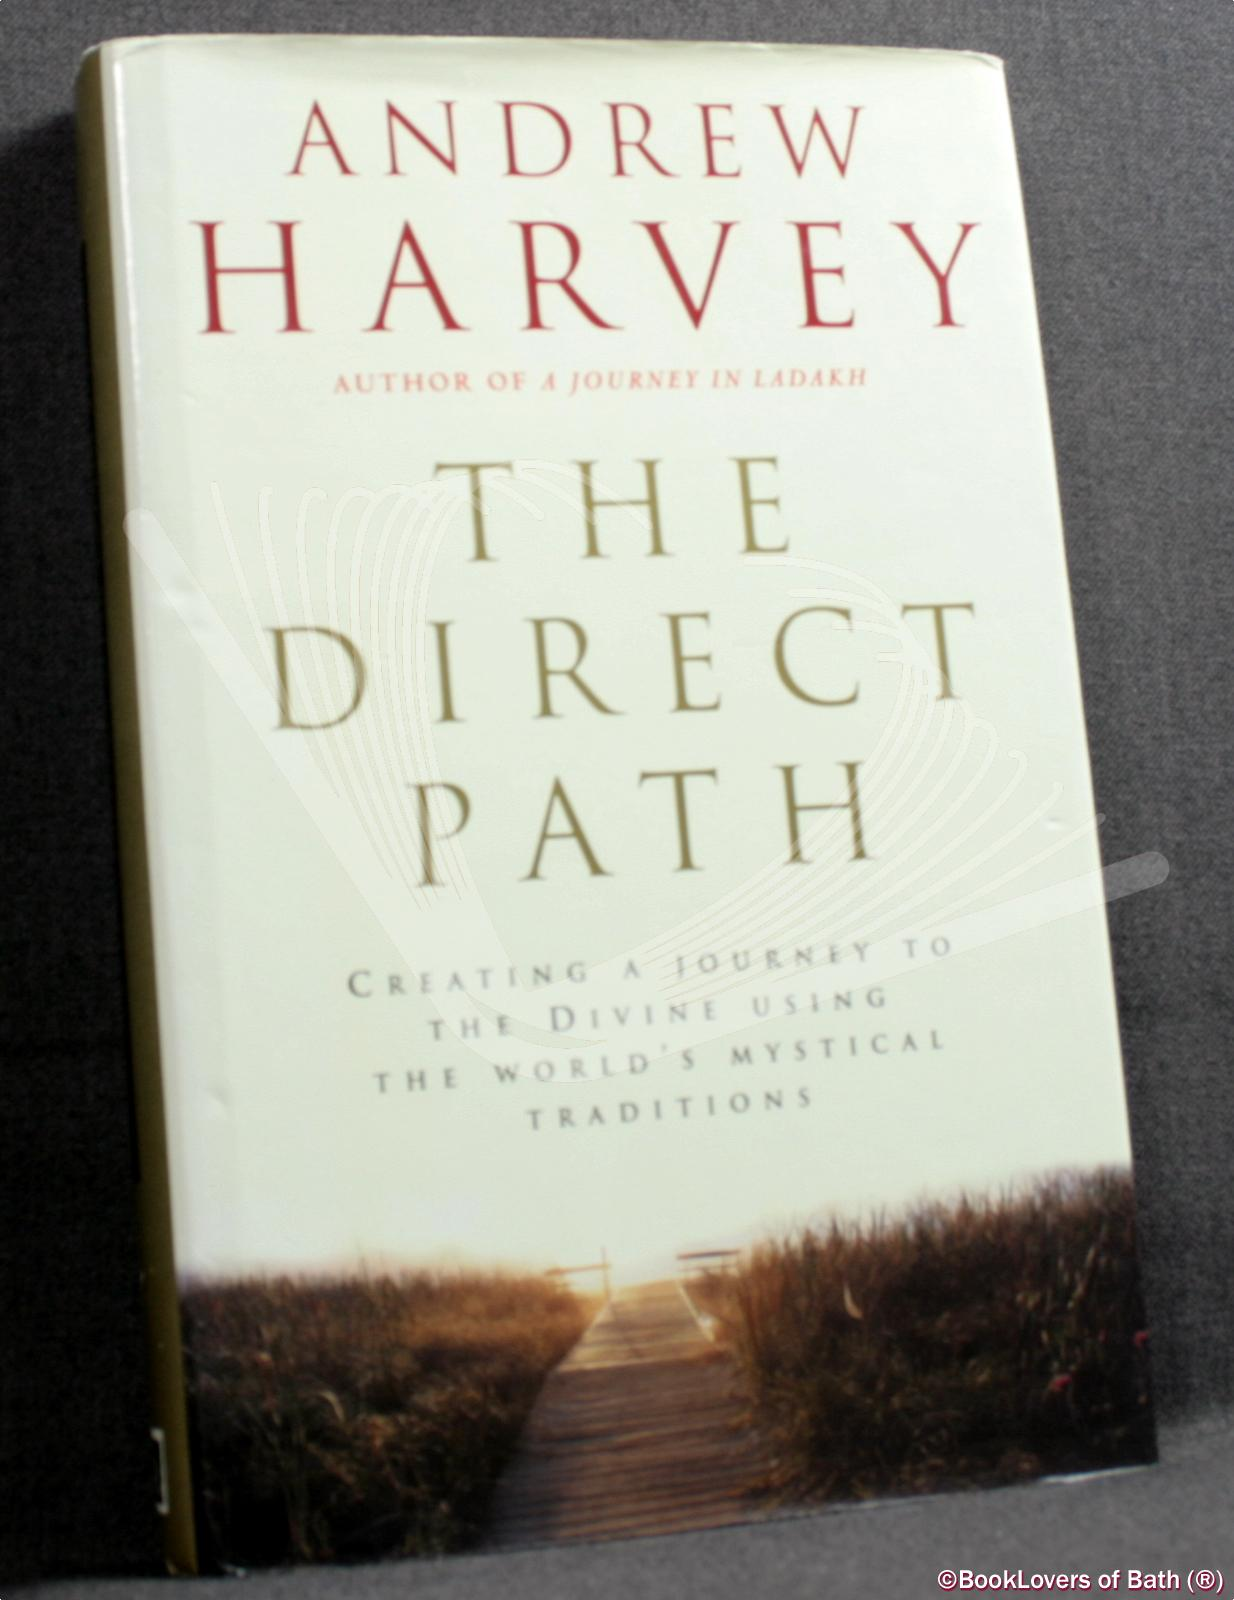 The Direct Path: Creating a Journey to the Divine Using the World's Mystical Traditions - Andrew Harvey